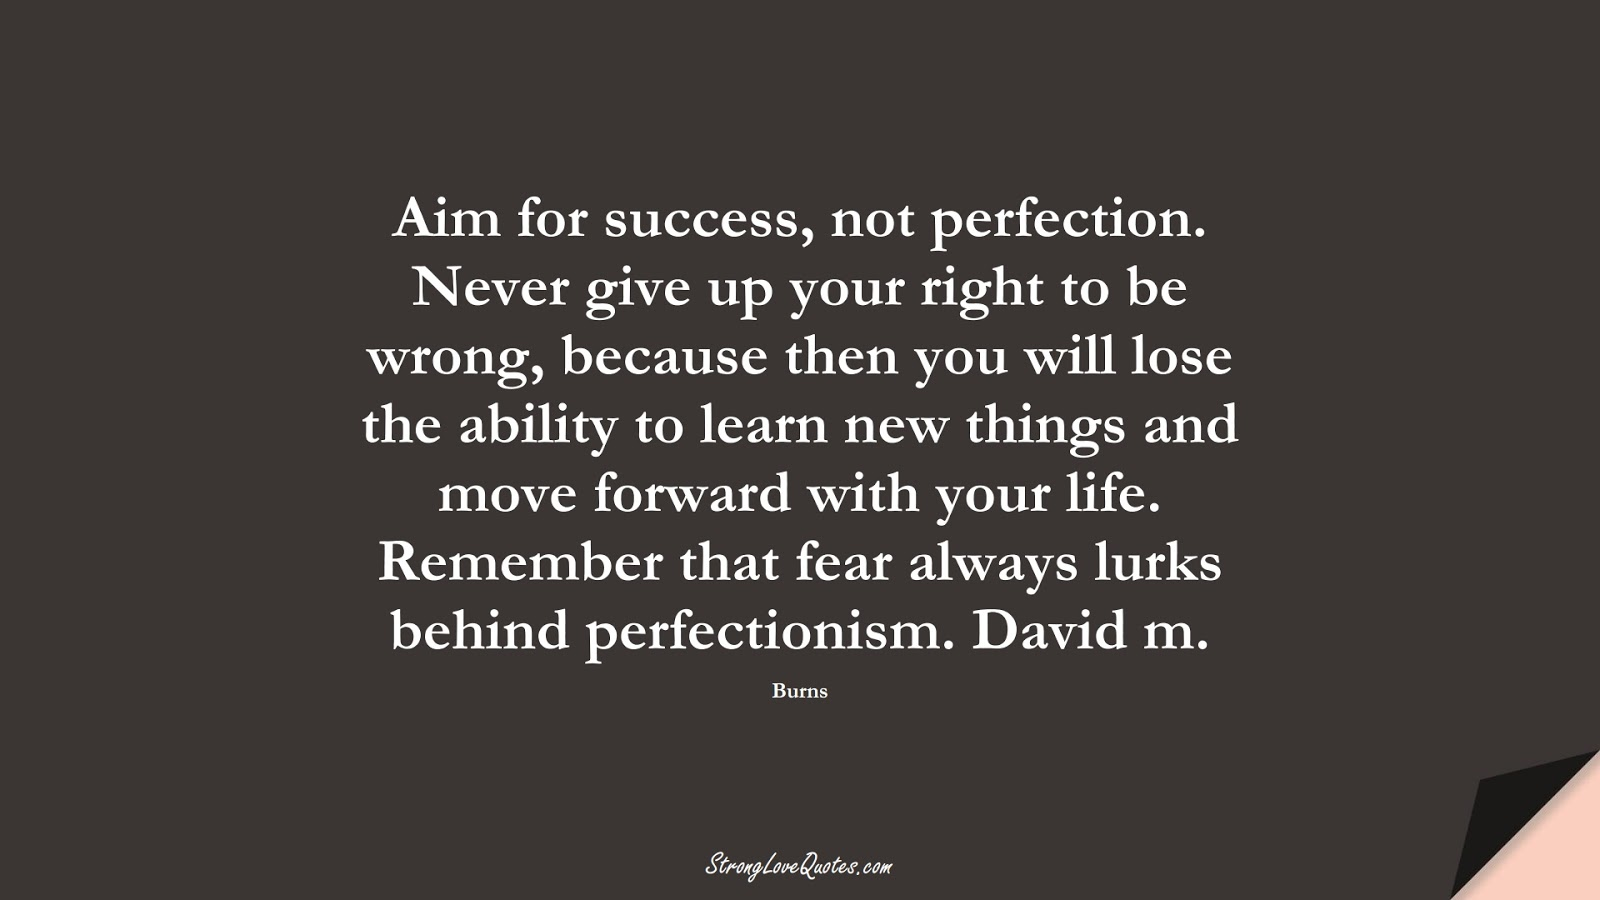 Aim for success, not perfection. Never give up your right to be wrong, because then you will lose the ability to learn new things and move forward with your life. Remember that fear always lurks behind perfectionism. David m. (Burns);  #EducationQuotes